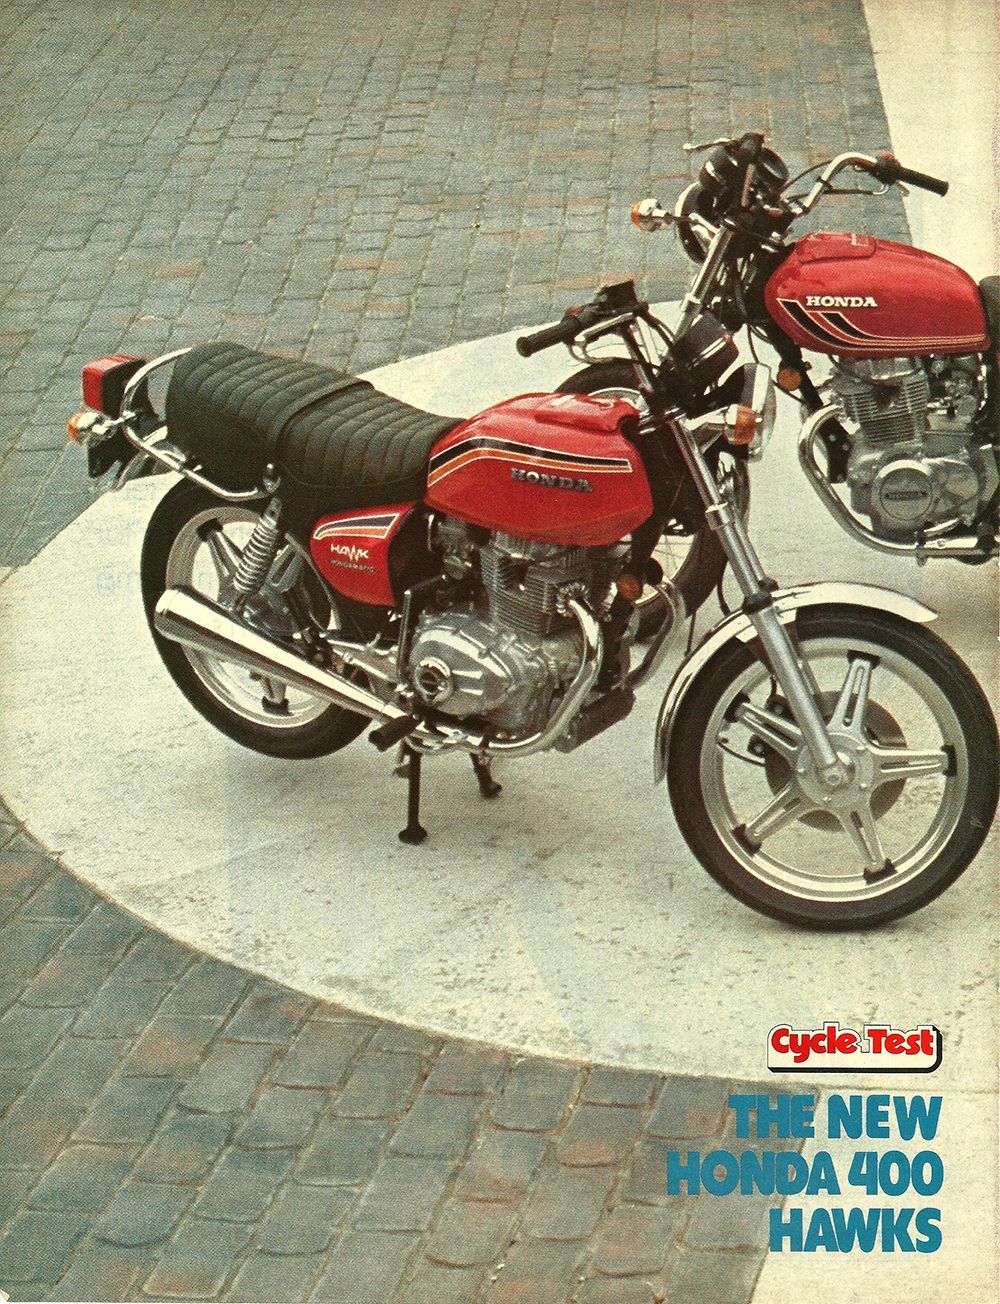 Cycle Test 1977 Cb400t The New Honda 400 Hawks 4into1